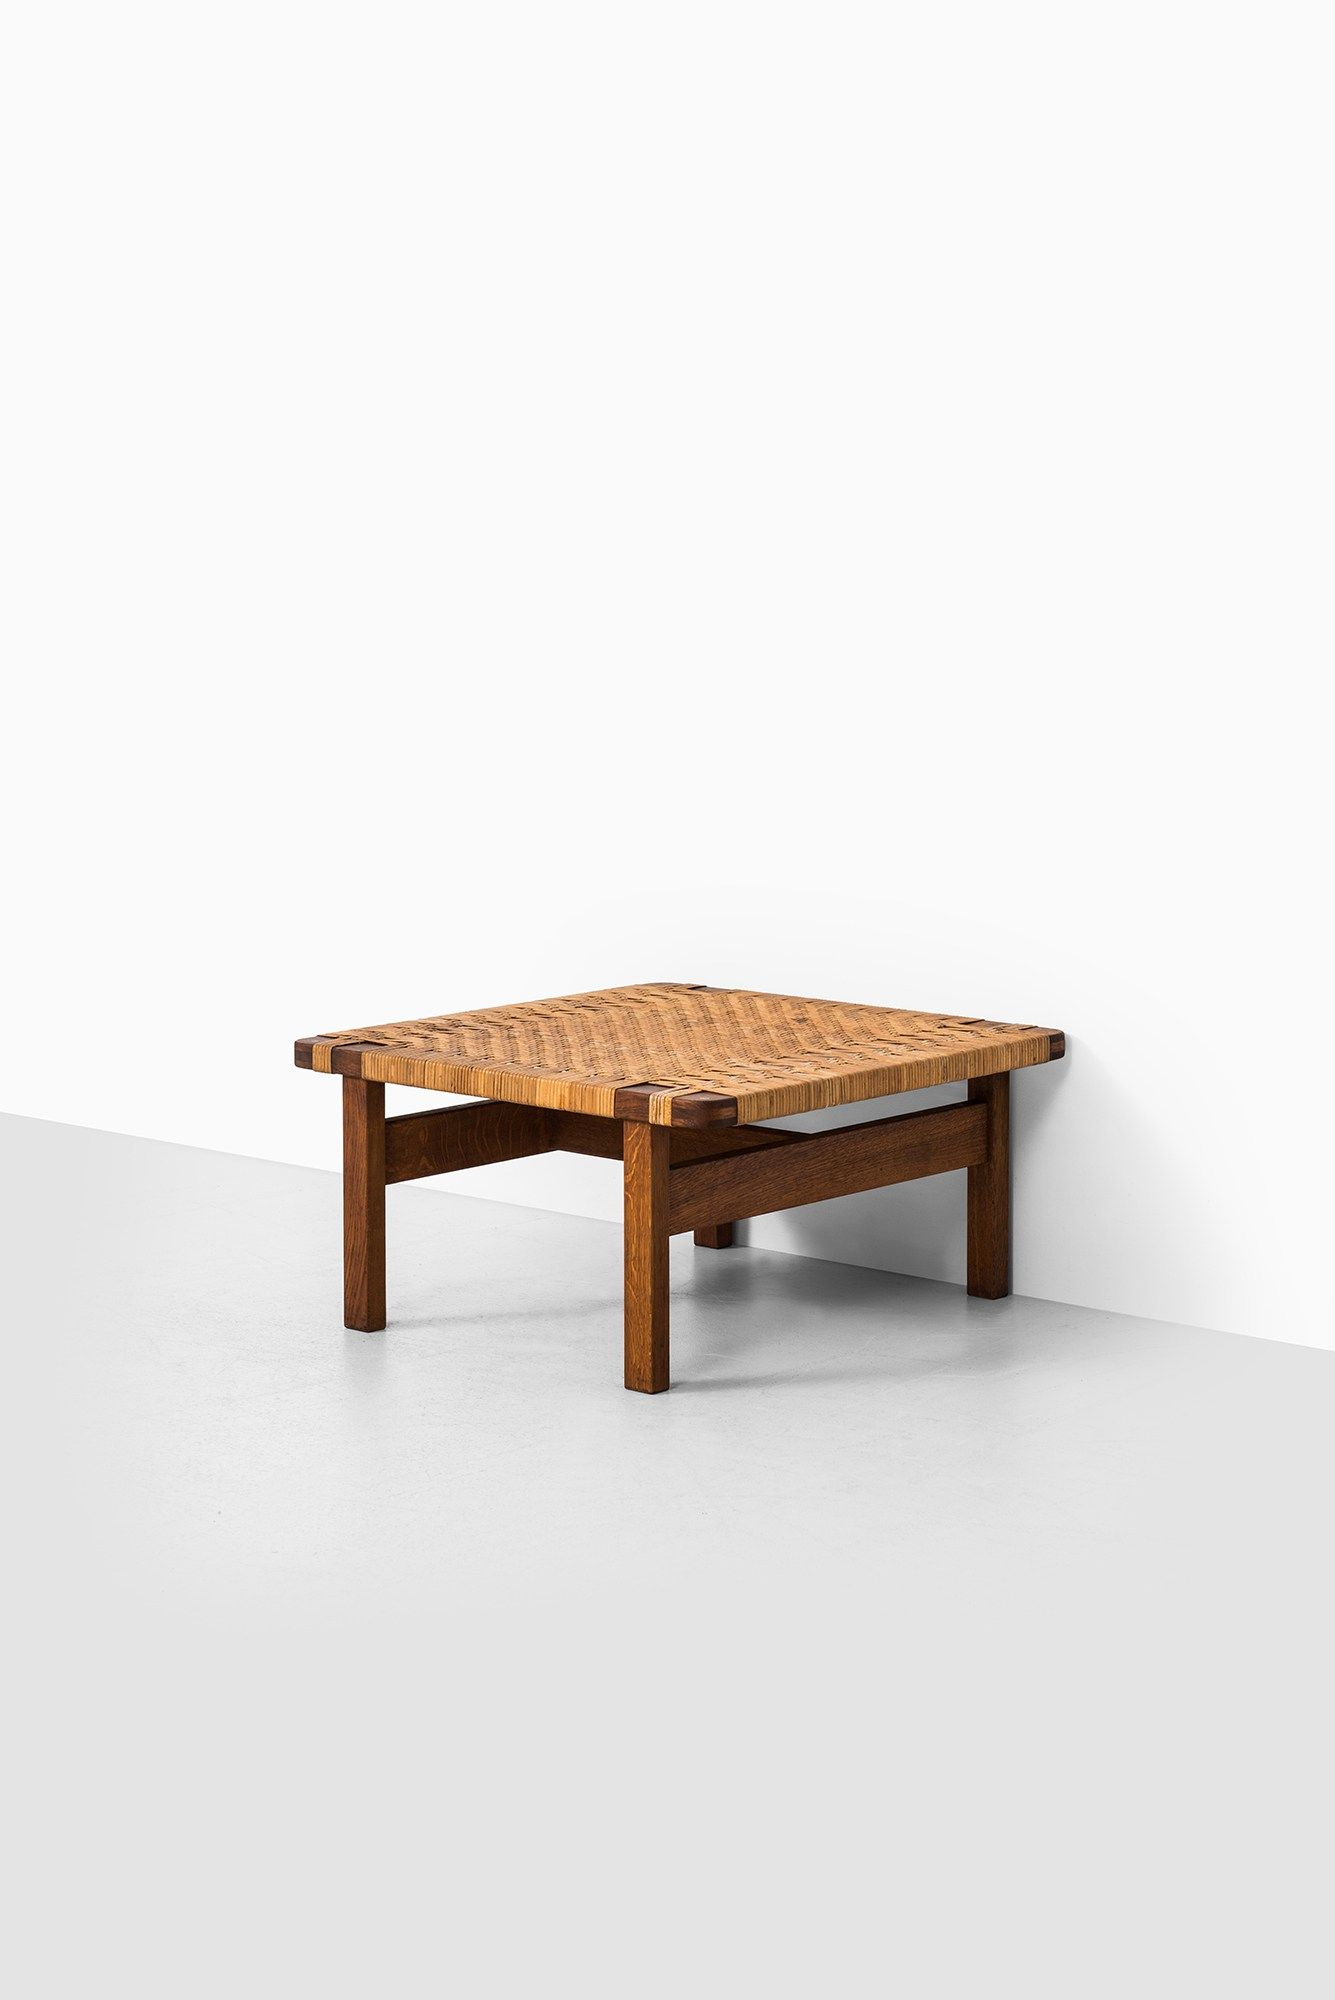 B¸rge Mogensen side table in oak and woven cane at Studio